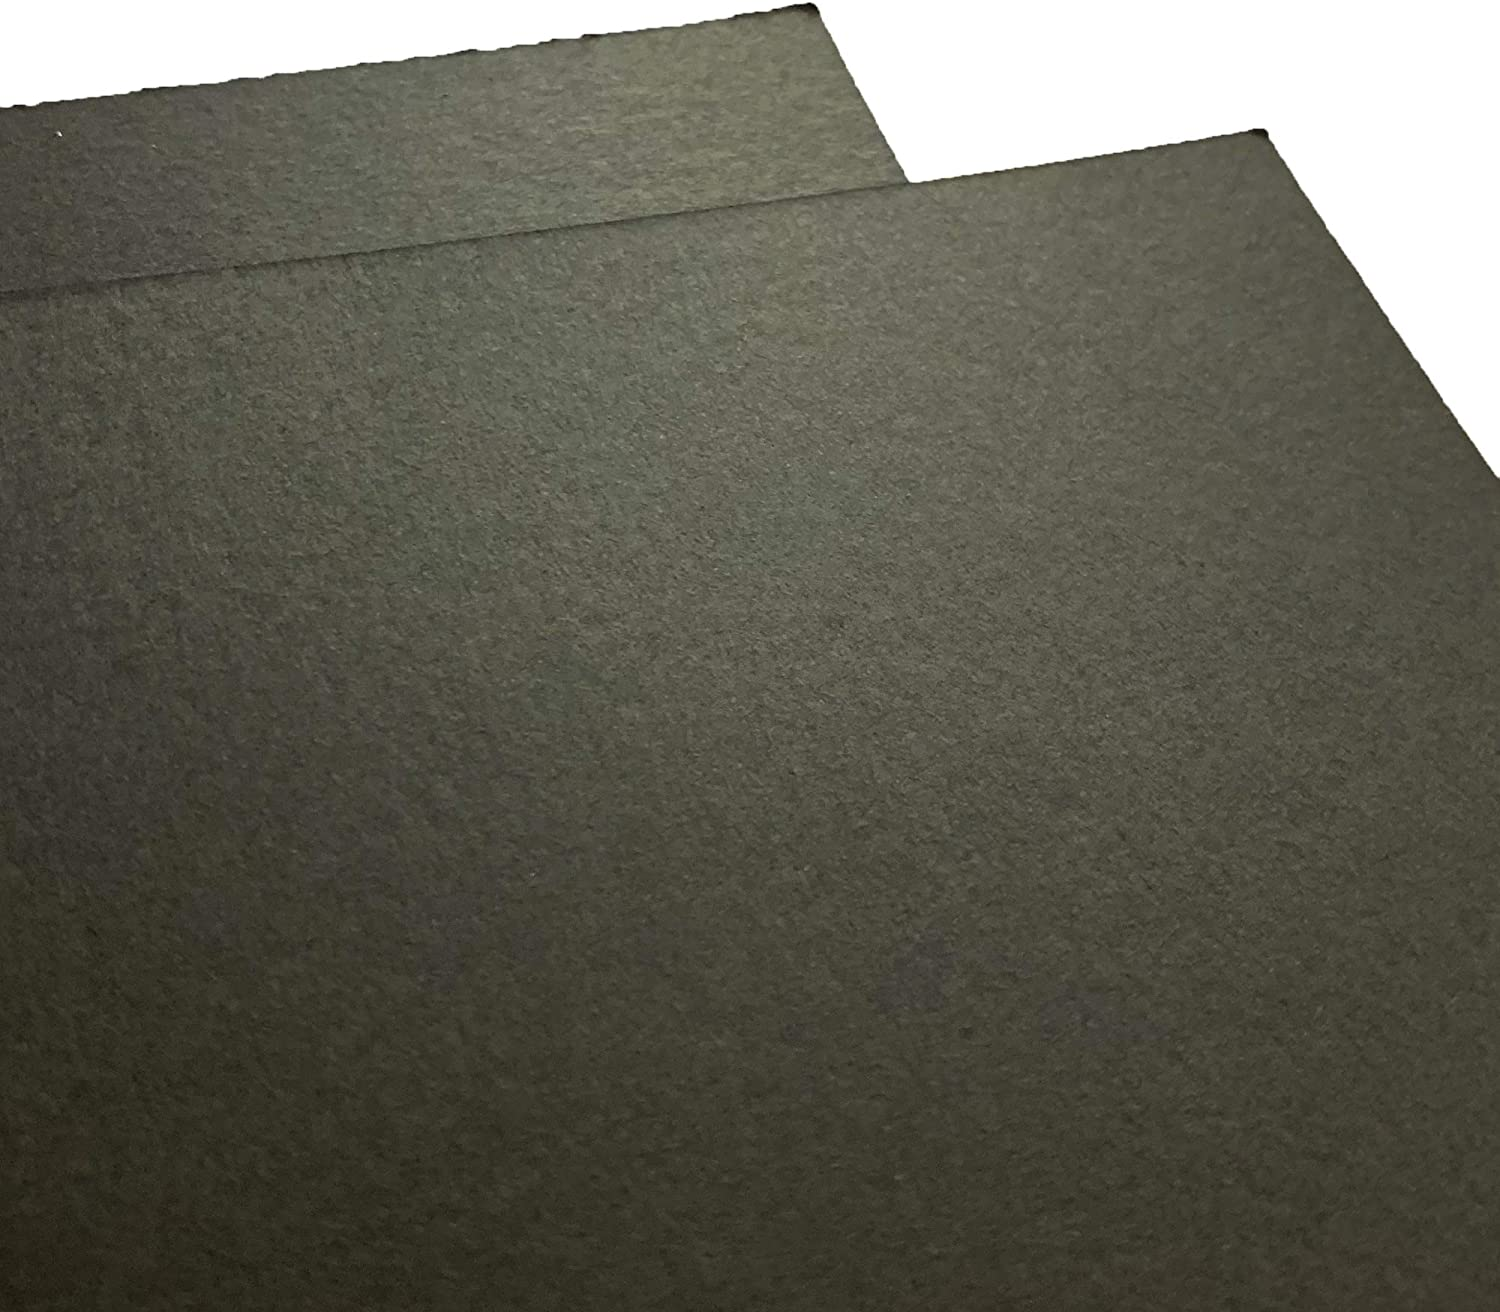 12 x 12 inches Black Cardstock Paper 300 GSM 50 Sheets 110 lb. Cover